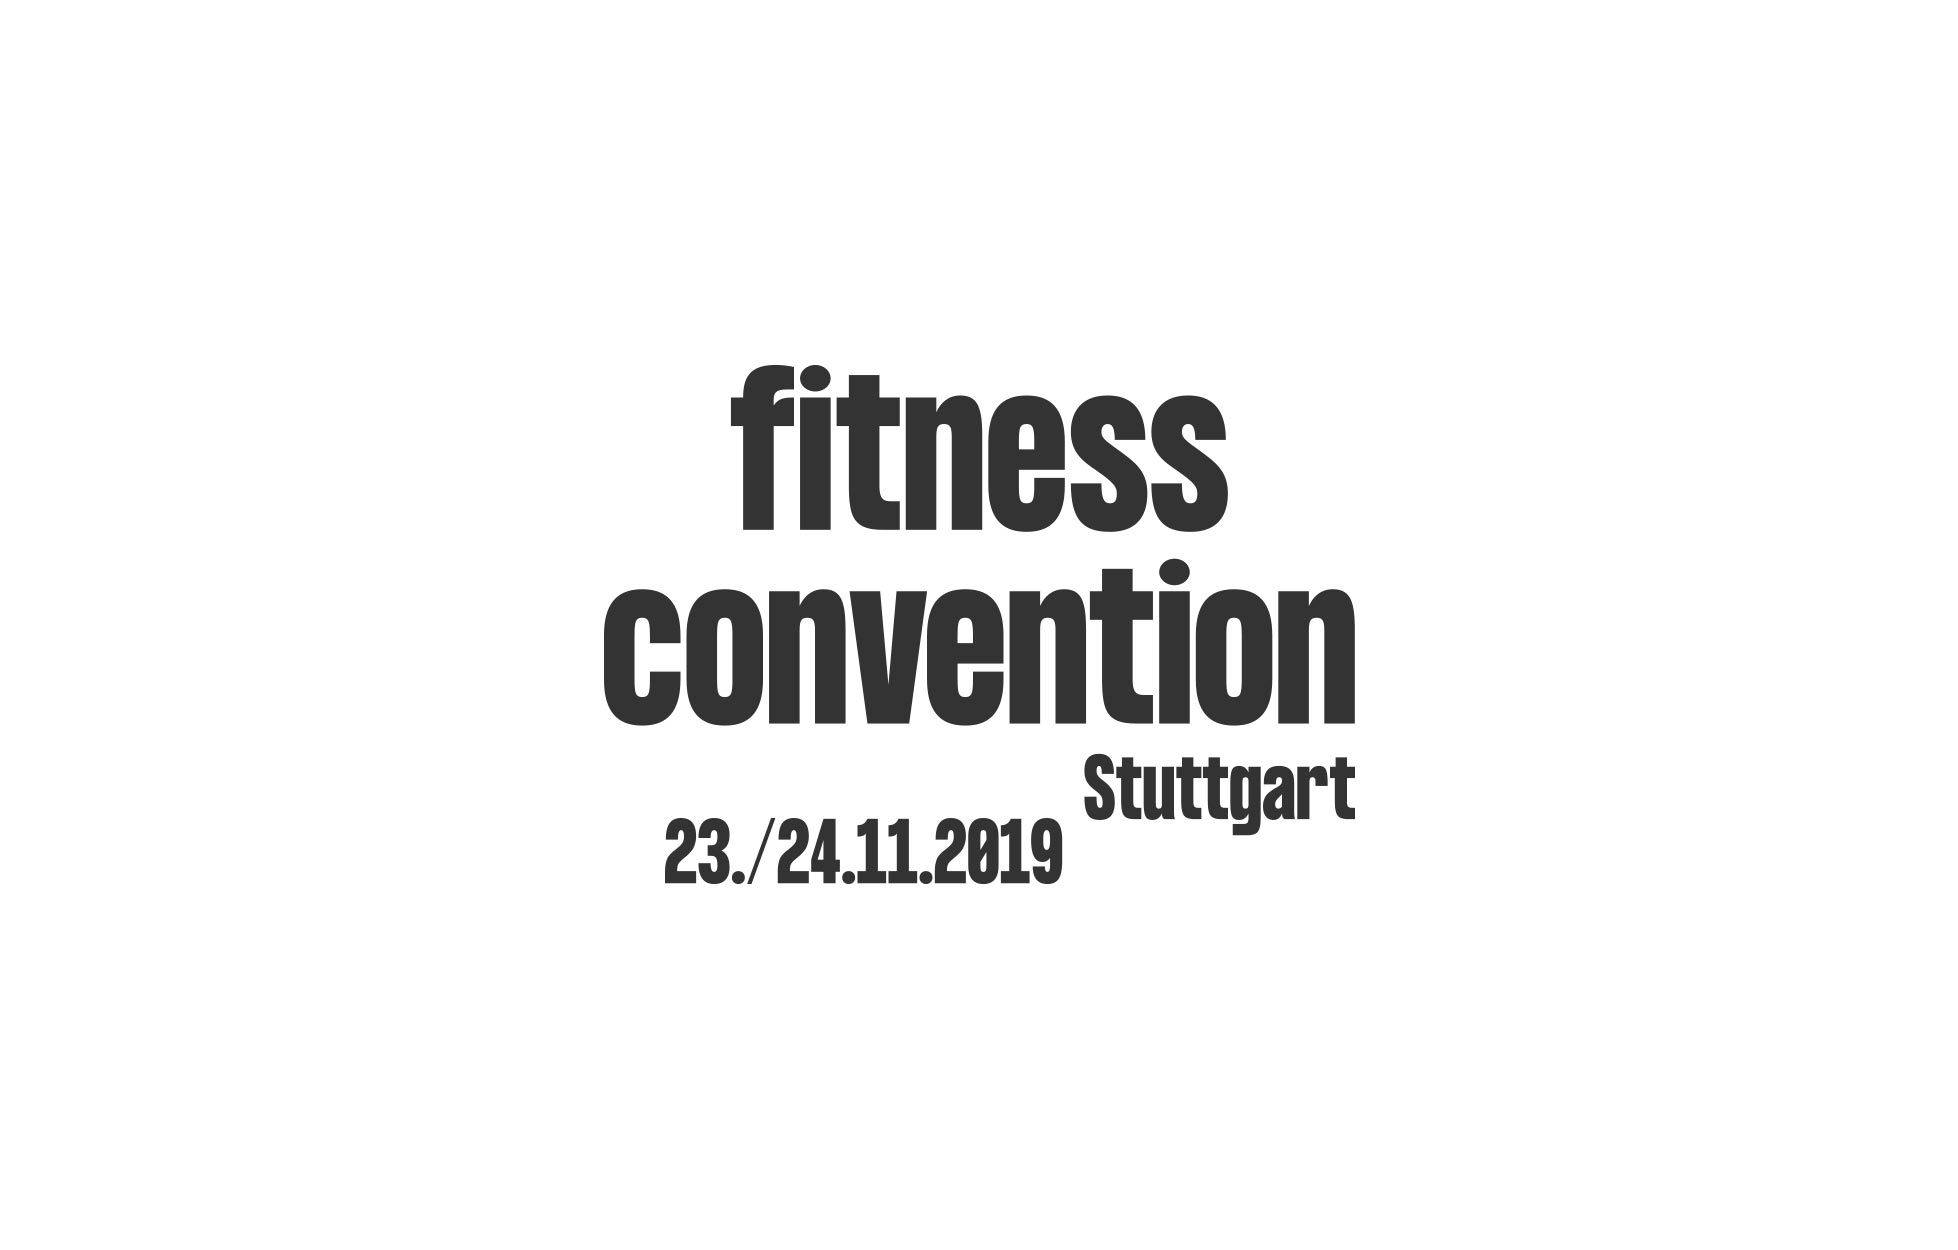 fitness-convention.jpg